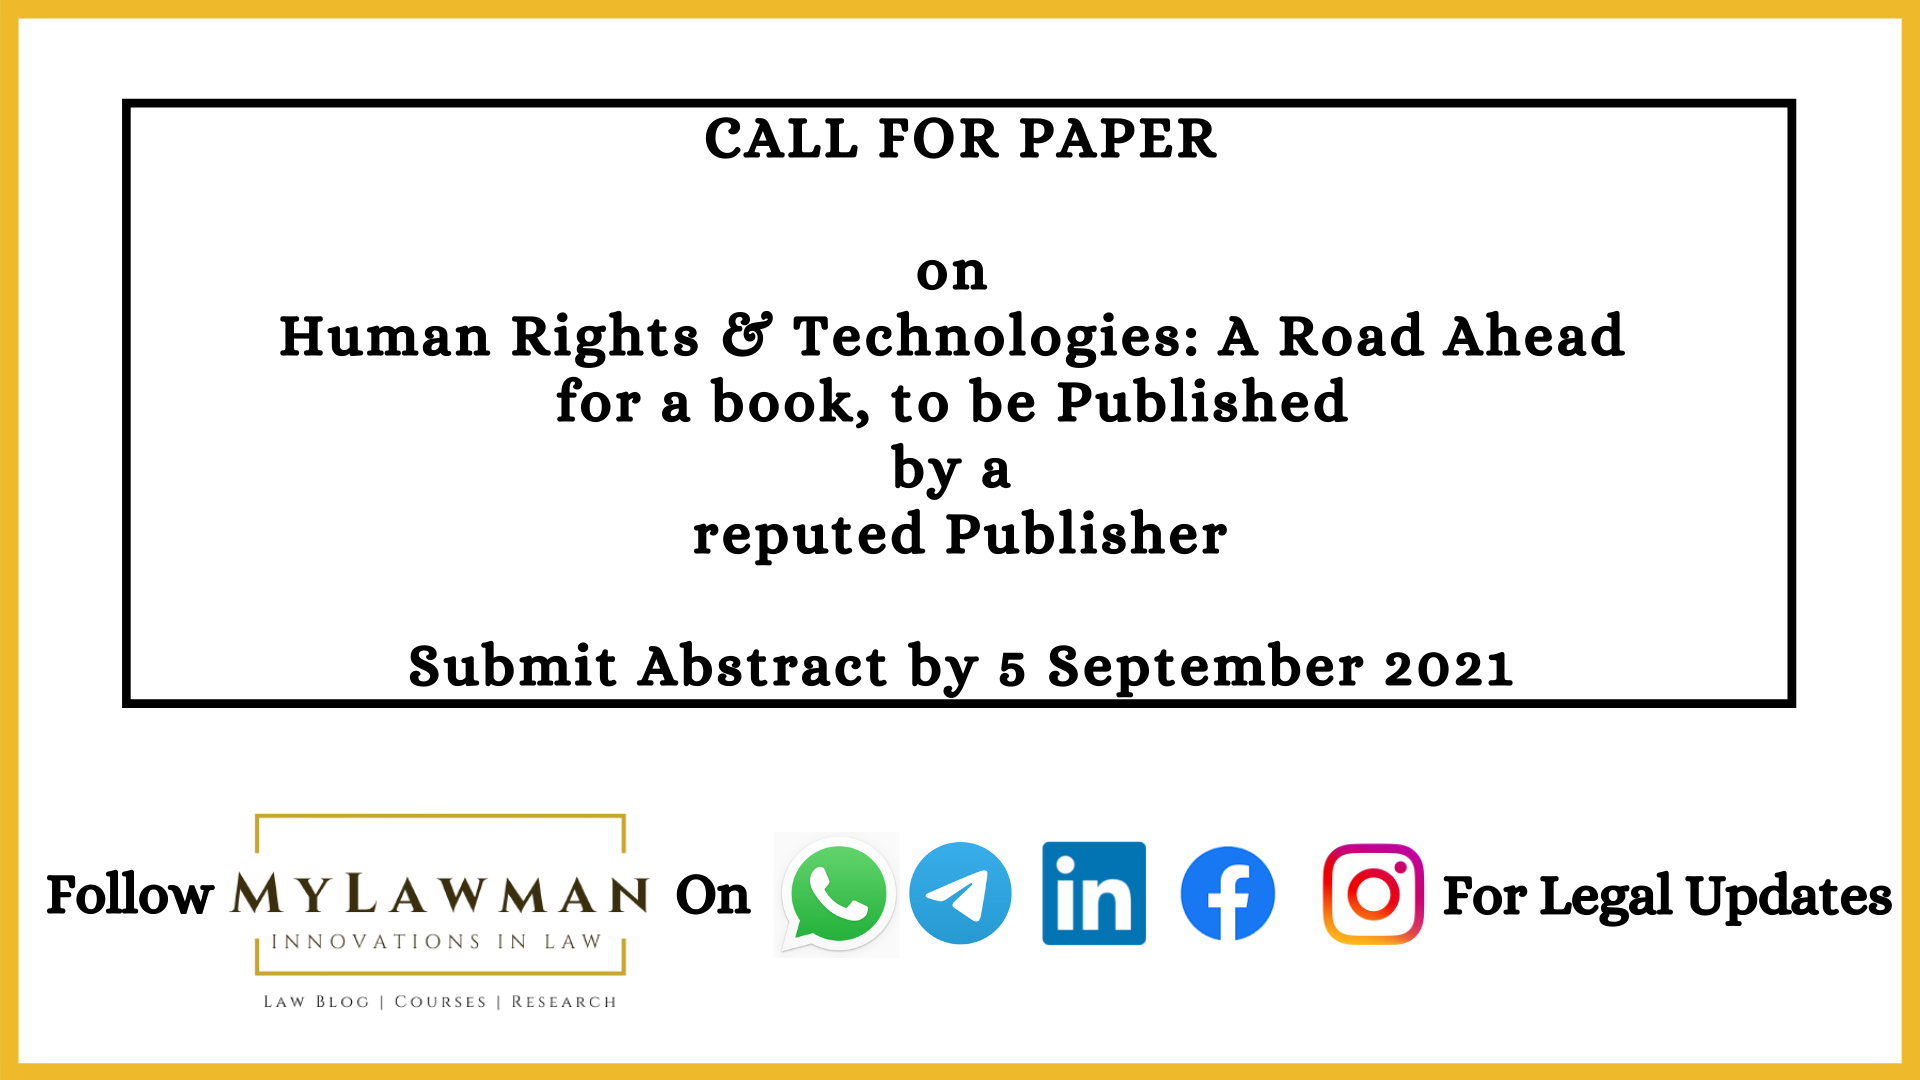 [Call for Paper] on Human Rights & Technologies: A Road Ahead for a book, to be Published by a reputed Publisher [Submit Abstract by 5 September 2021]